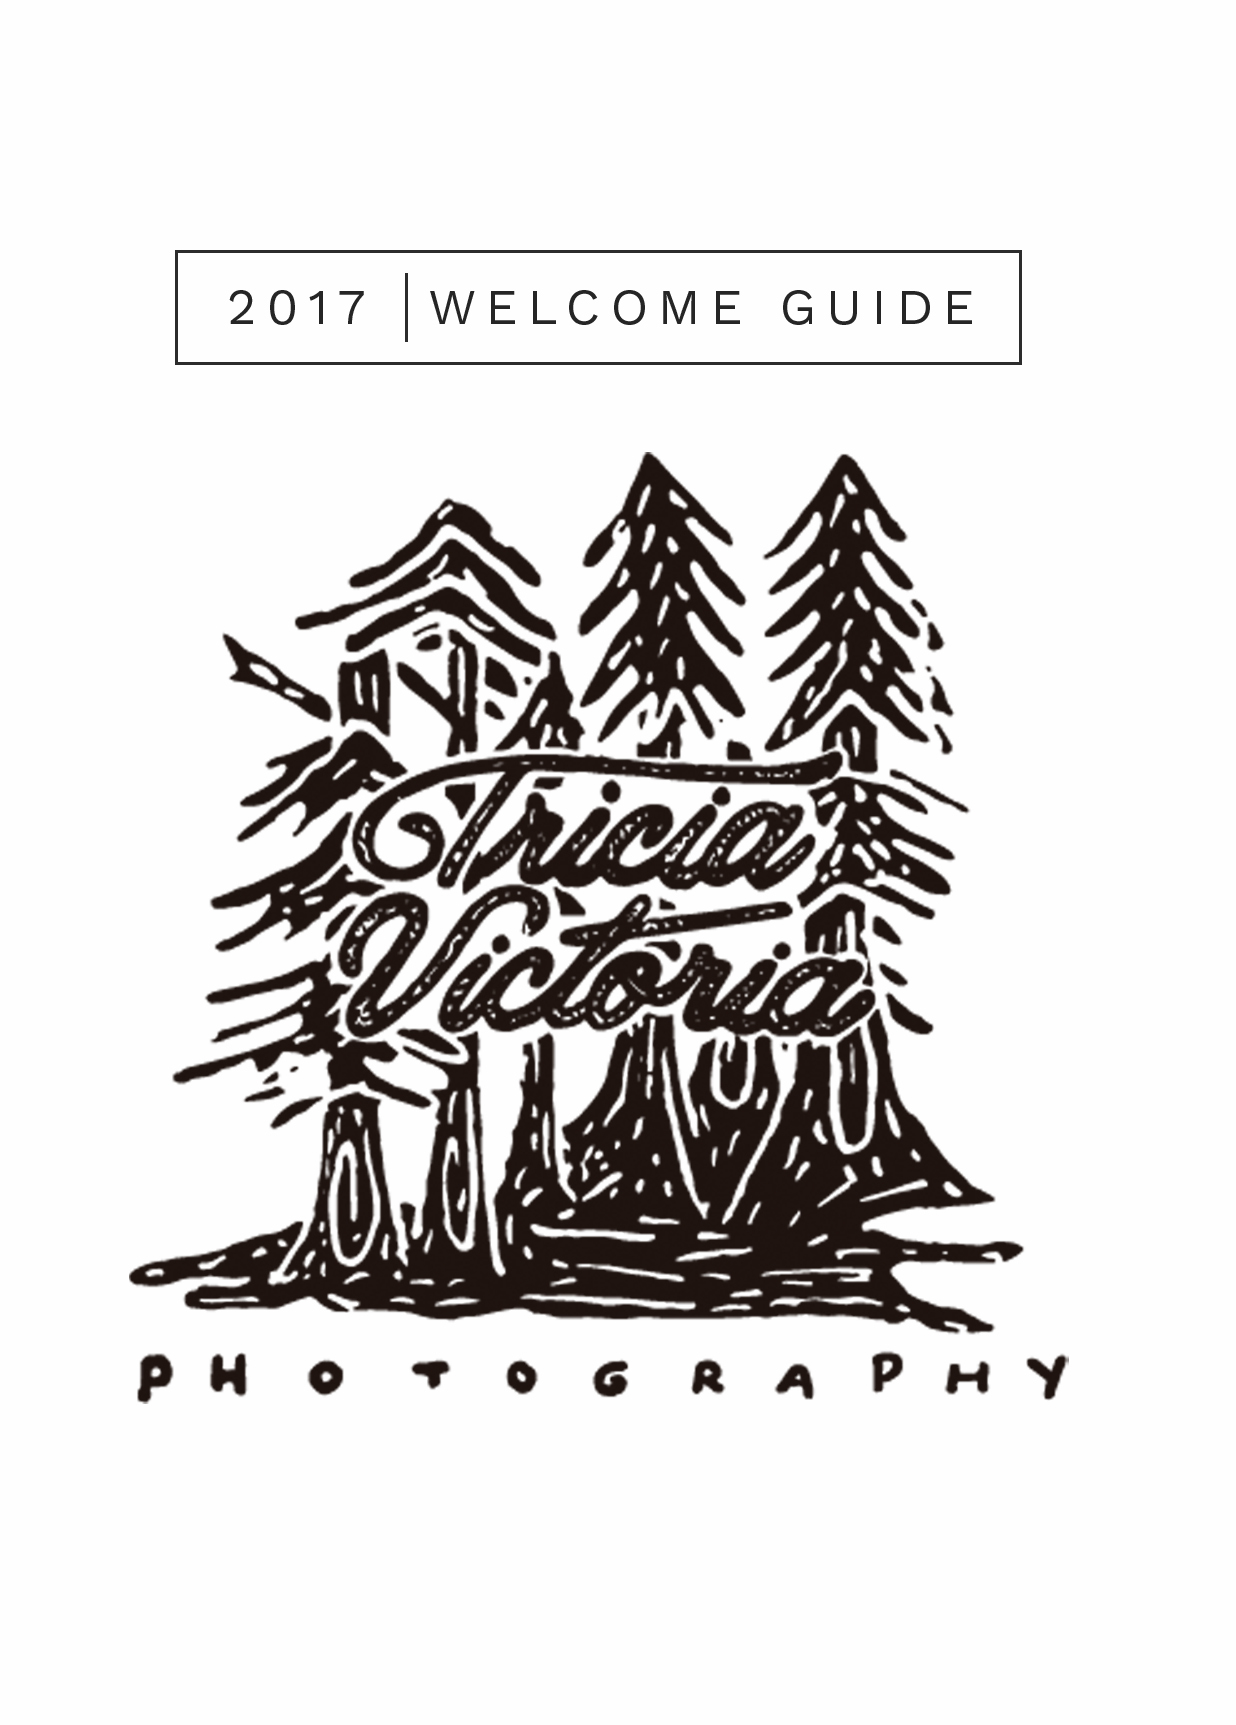 Welcome Guide